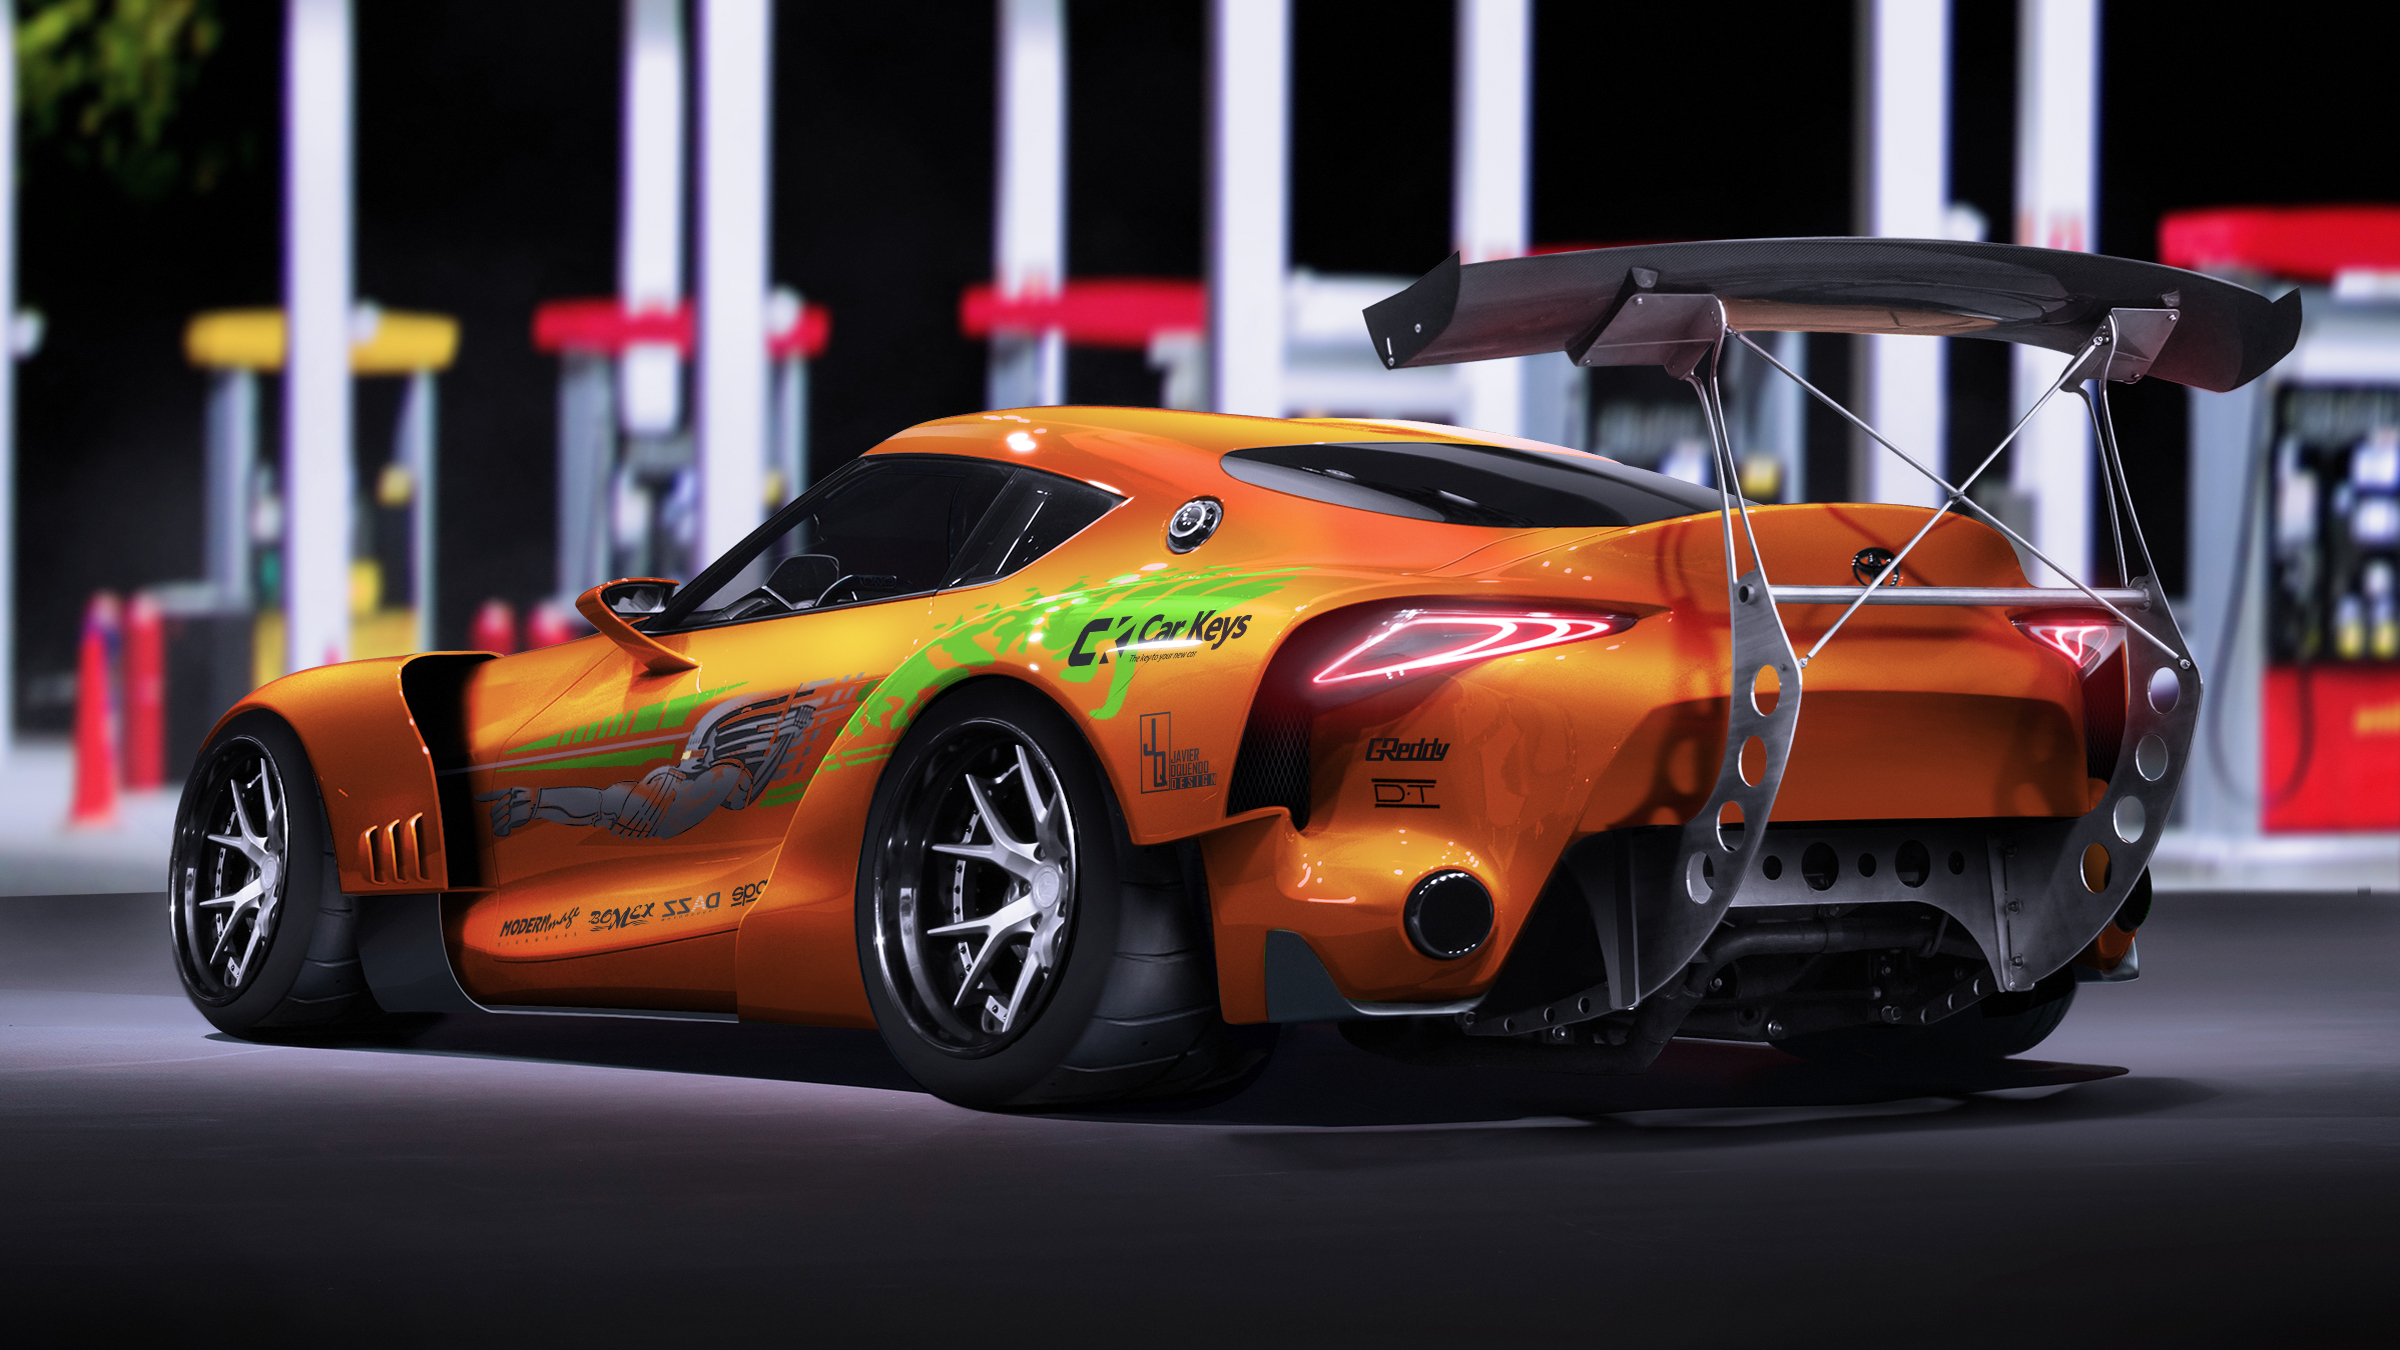 The Fast and the Furious\' liveries applied to modern equivalents ...